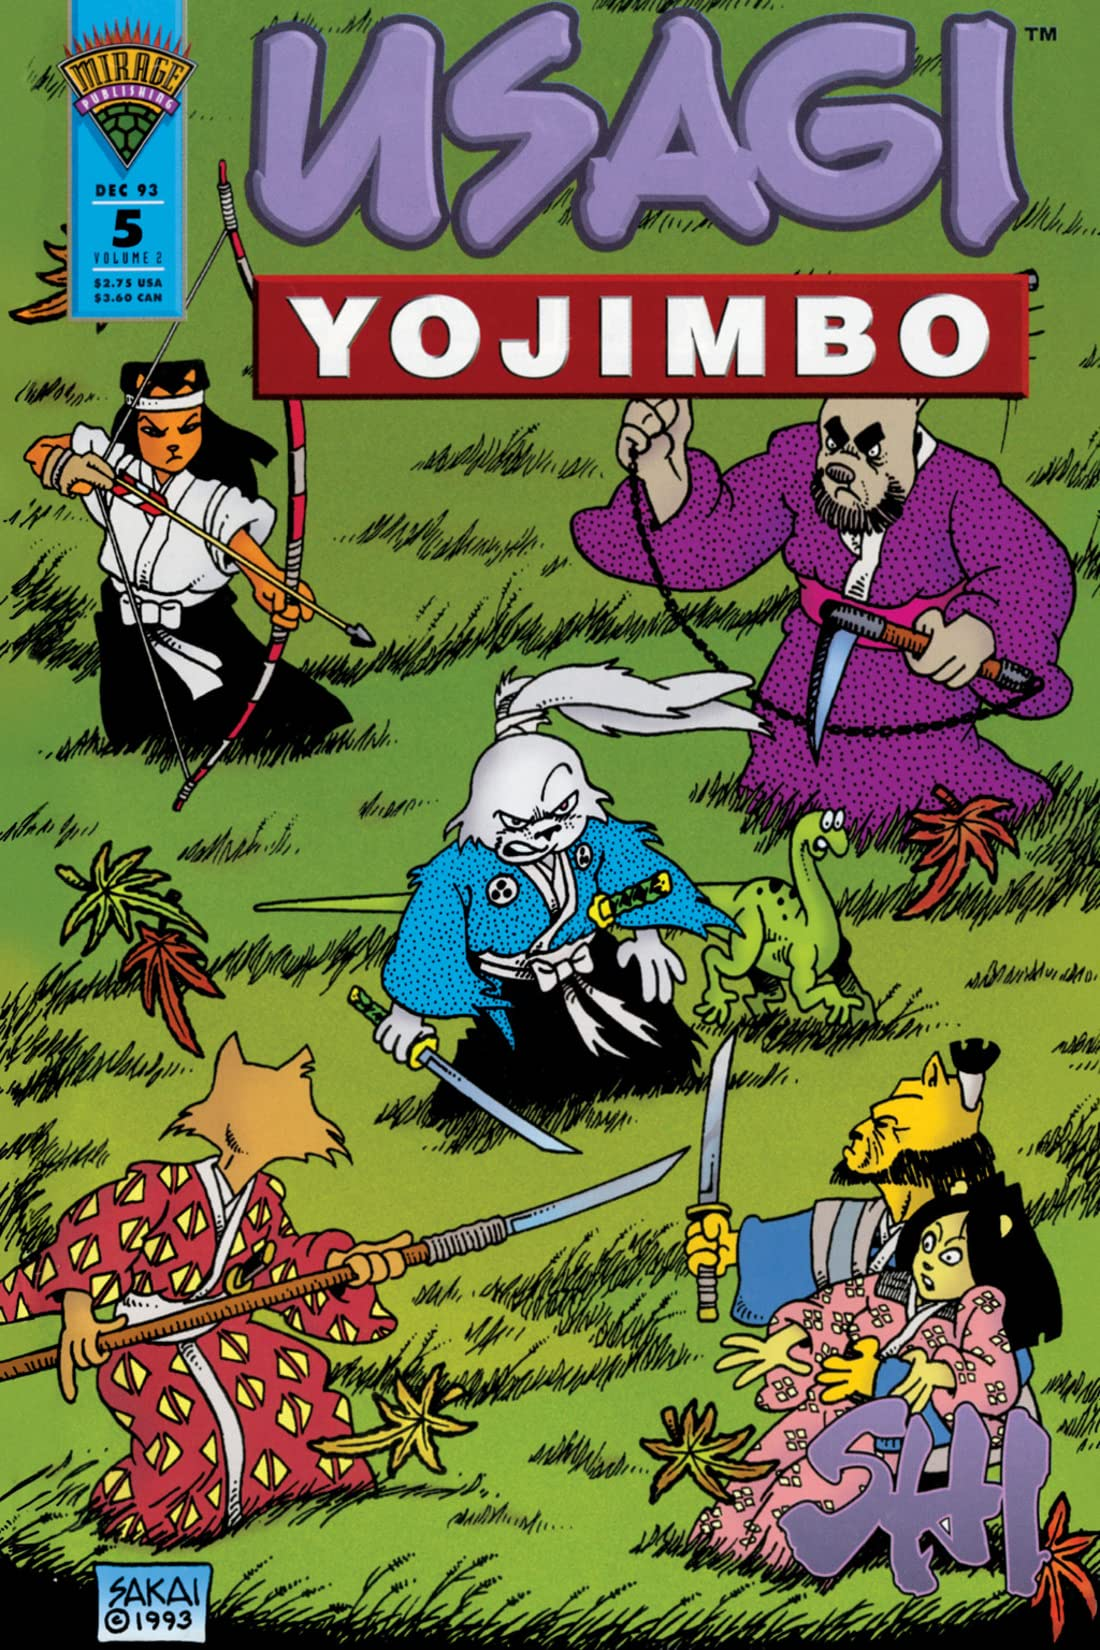 Usagi Yojimbo Vol. 2 #5